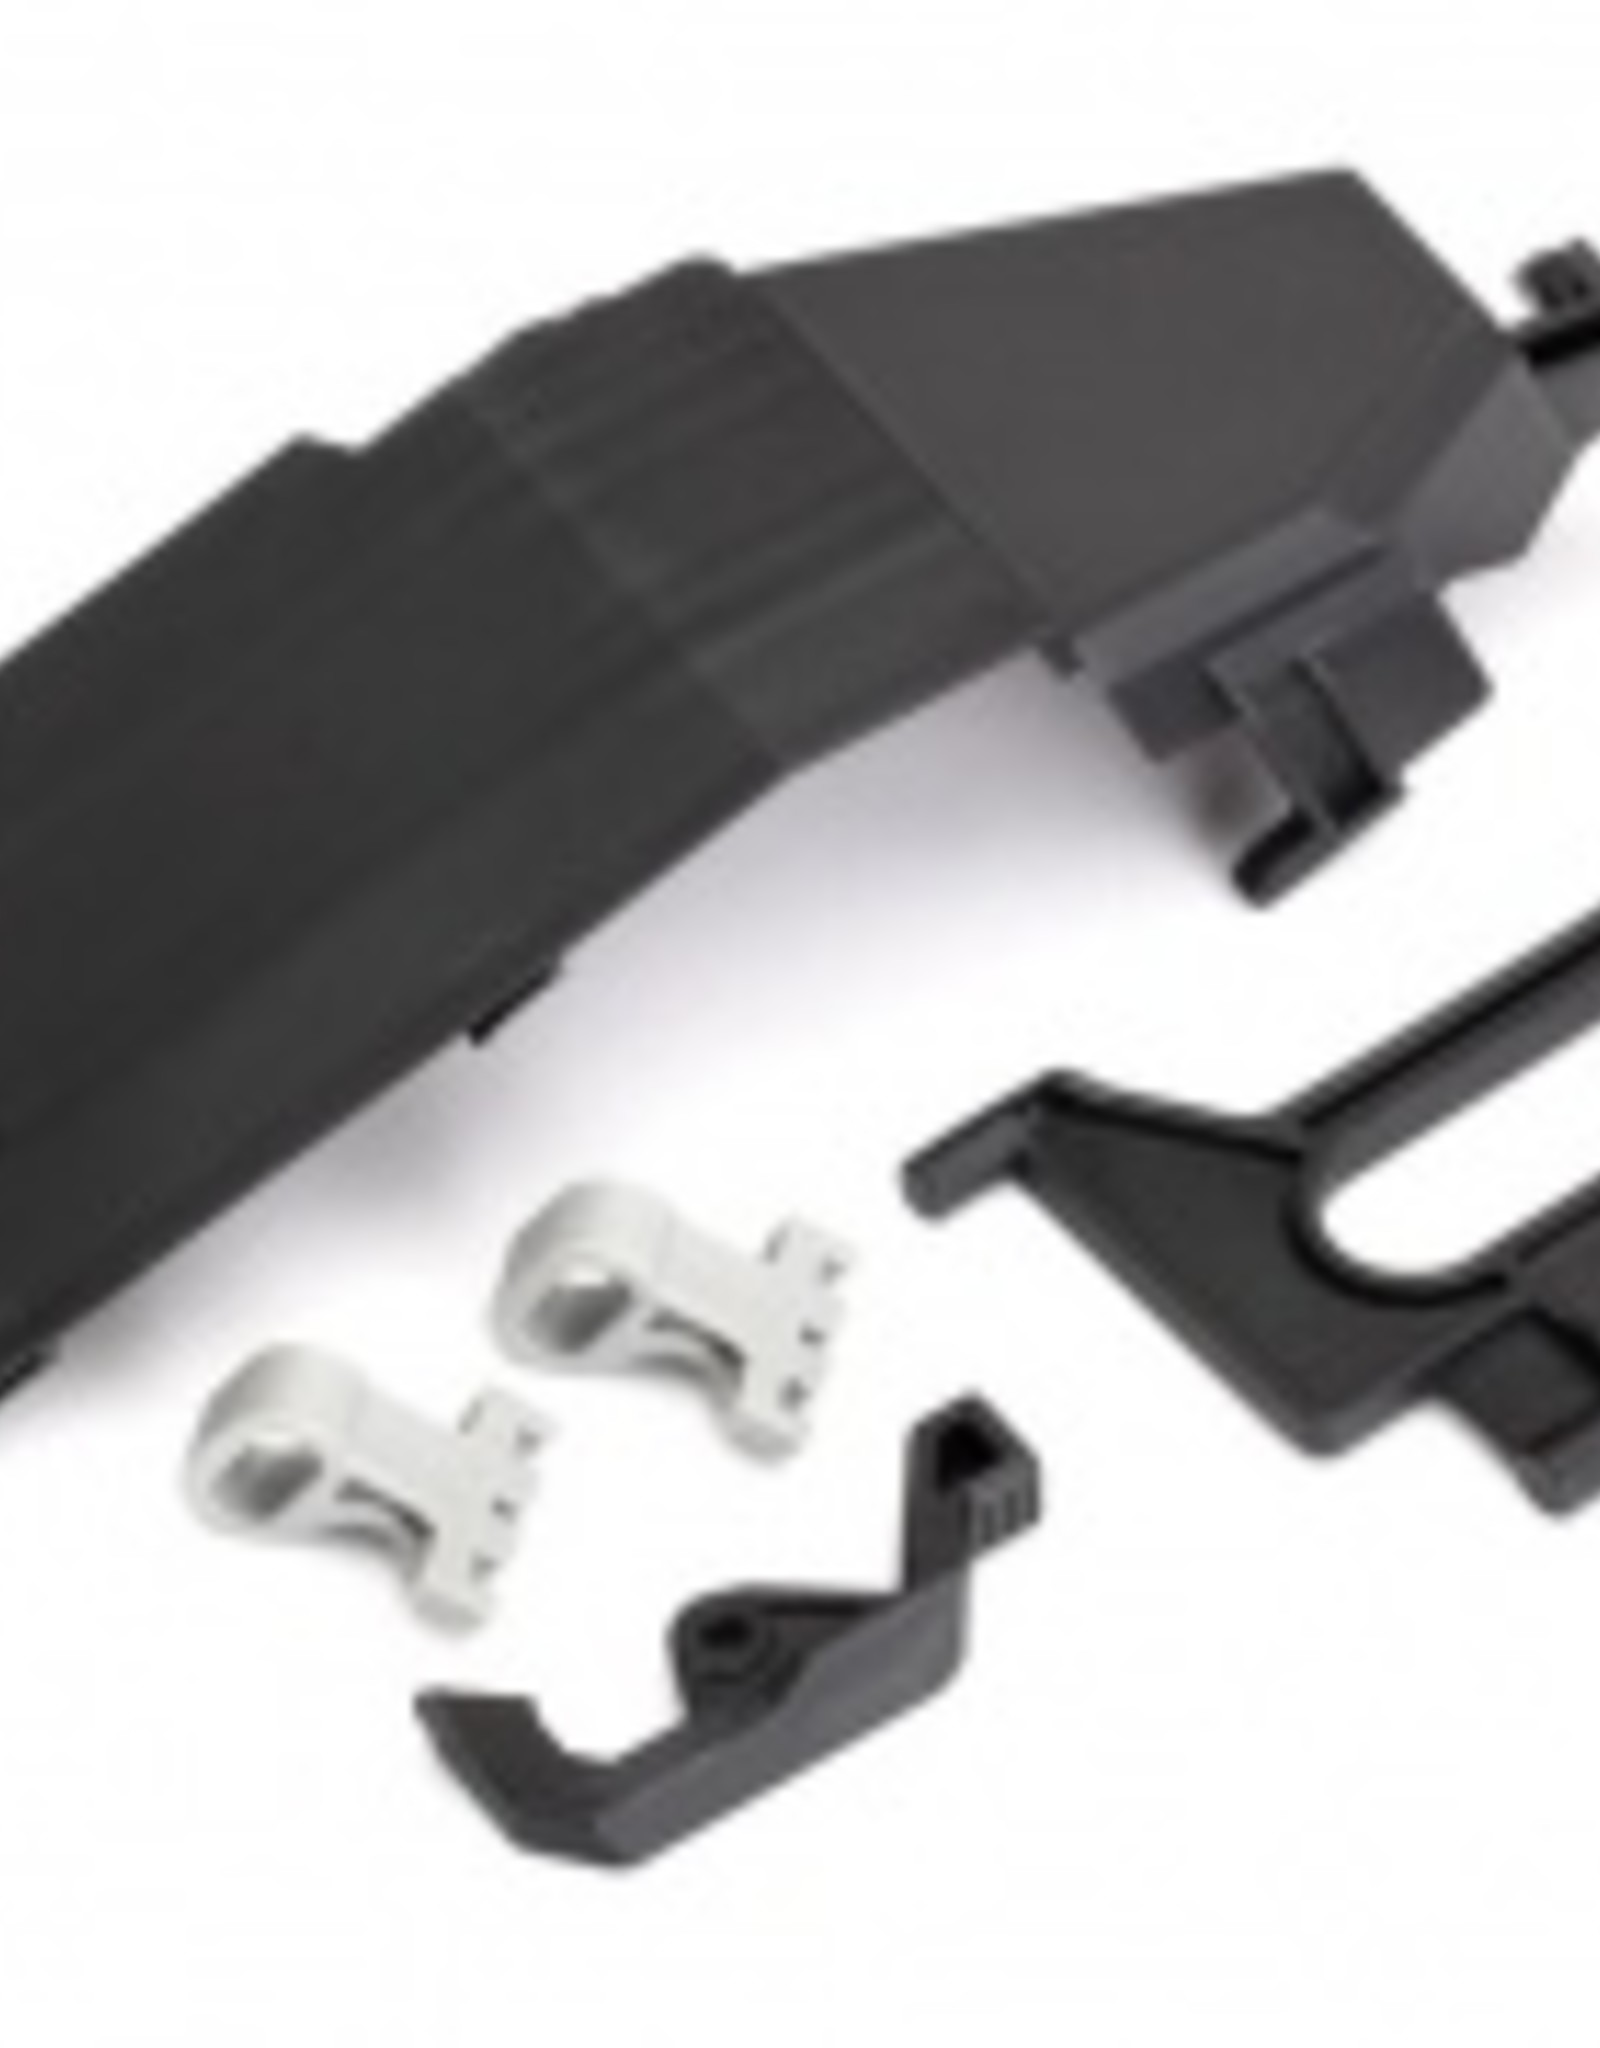 Traxxas Traxxas Unlimited Desert Racer Battery door/ battery strap/ retainers (2)/ latch